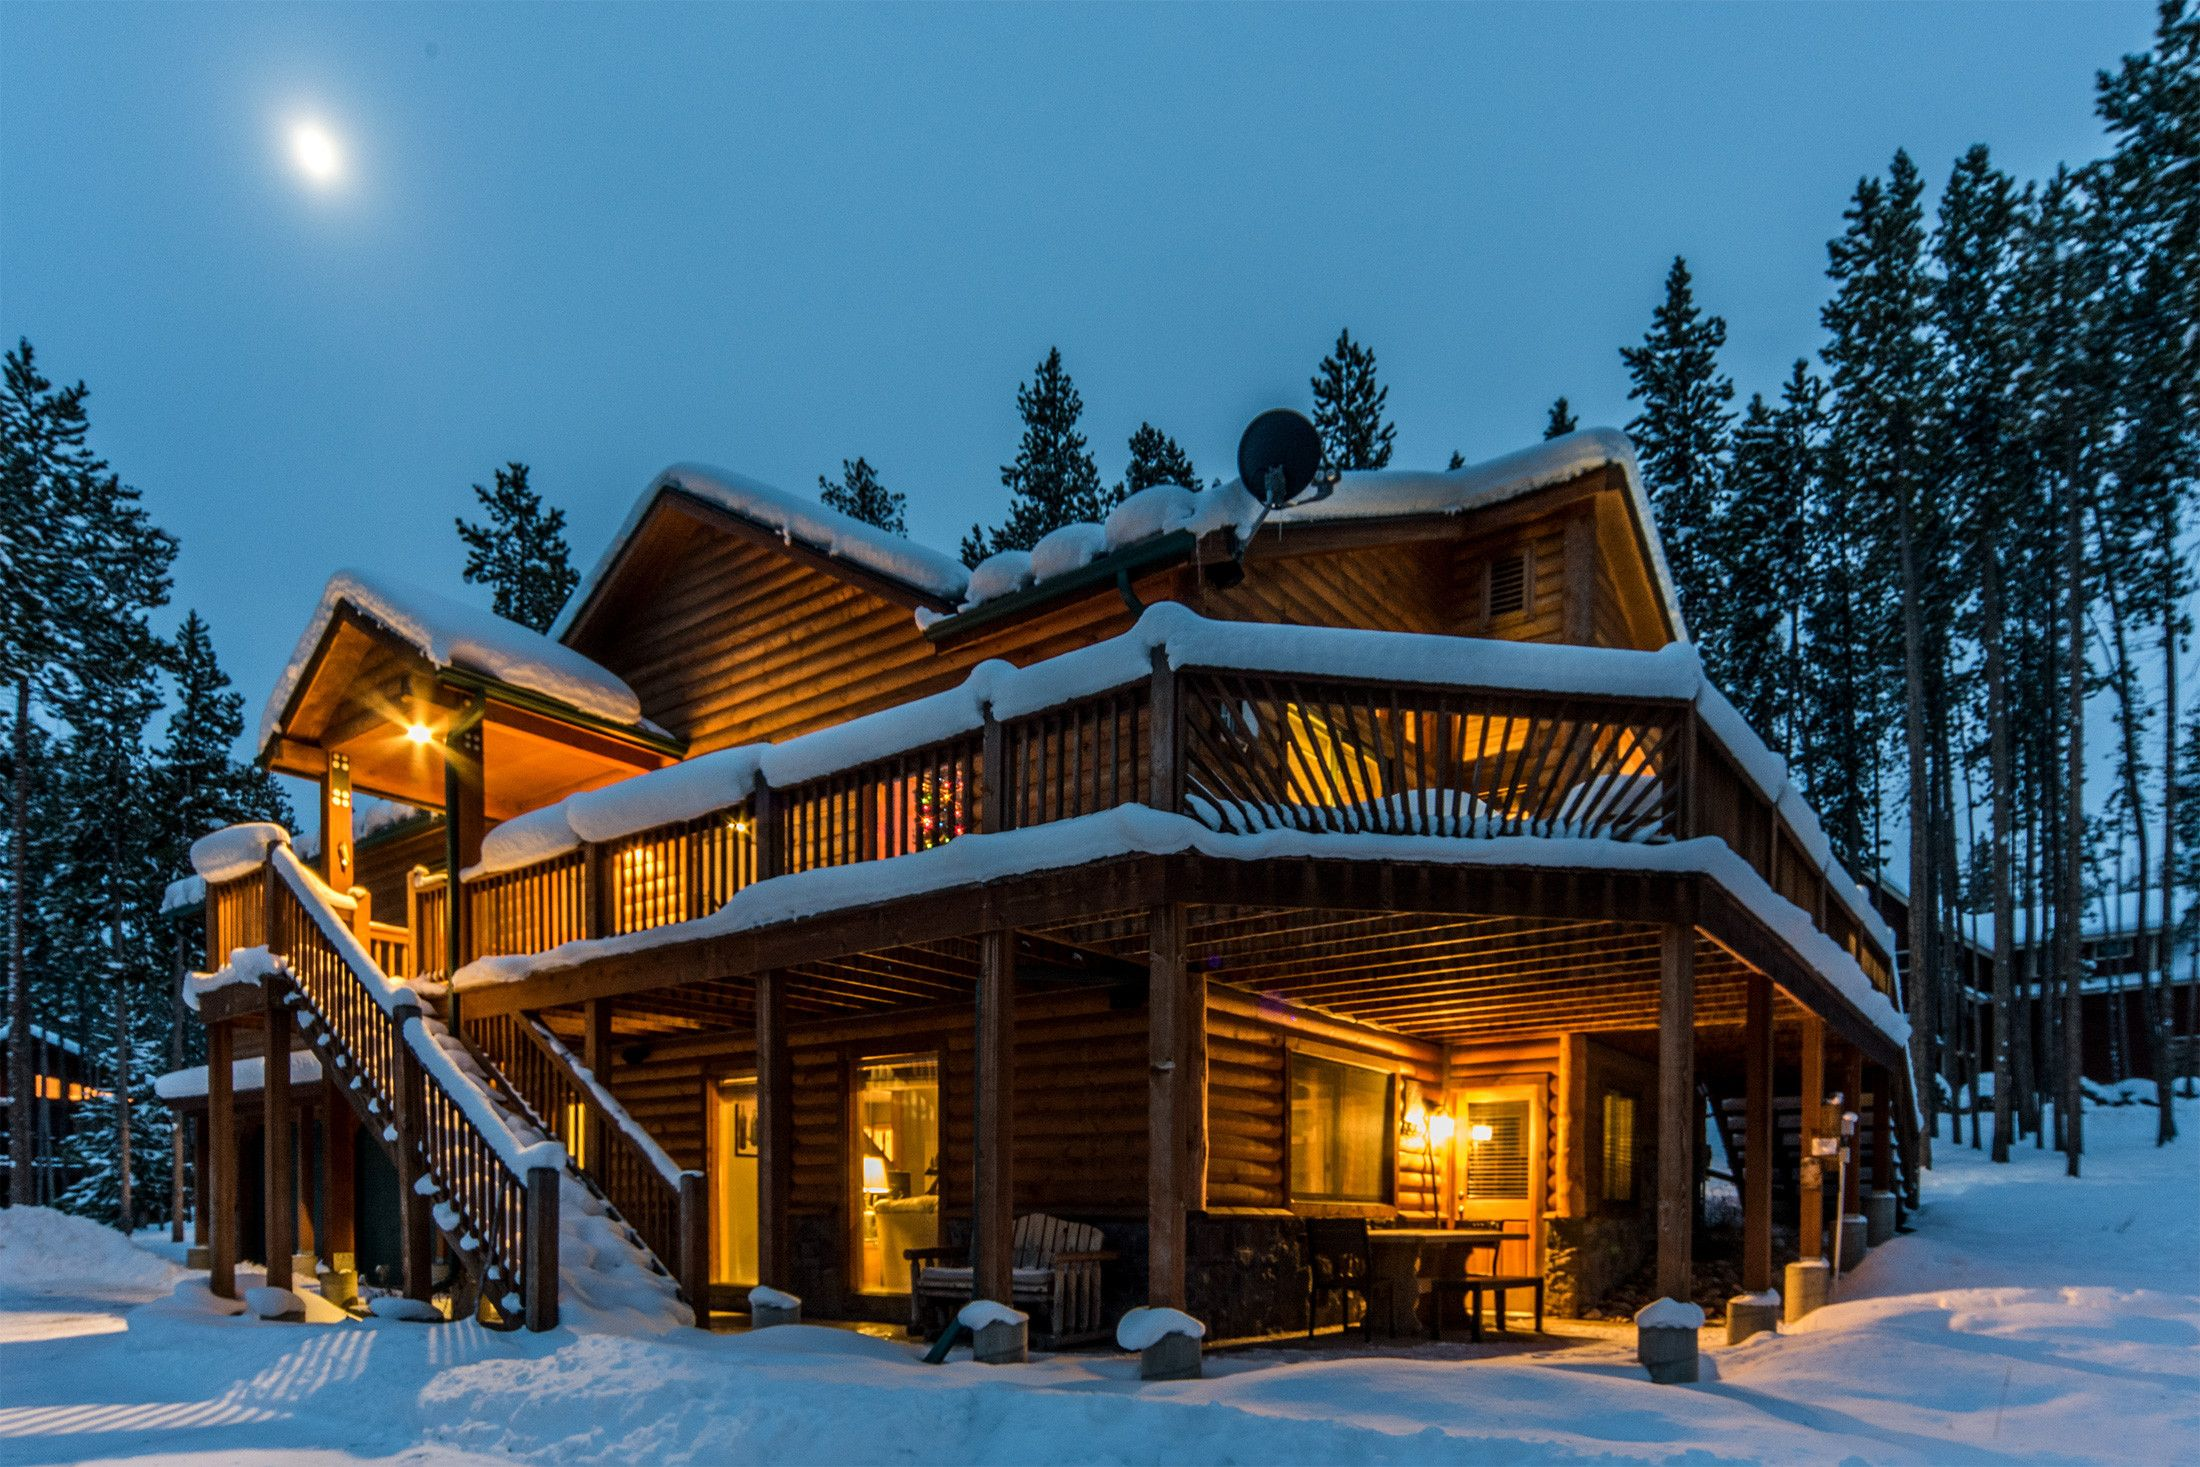 You Can Afford Your Dream Getaway Complete With Hot Tubs Mountain Views And More Winter Is Magical In The Colorado Cabins Luxury Cabin Aspen Colorado Cabins